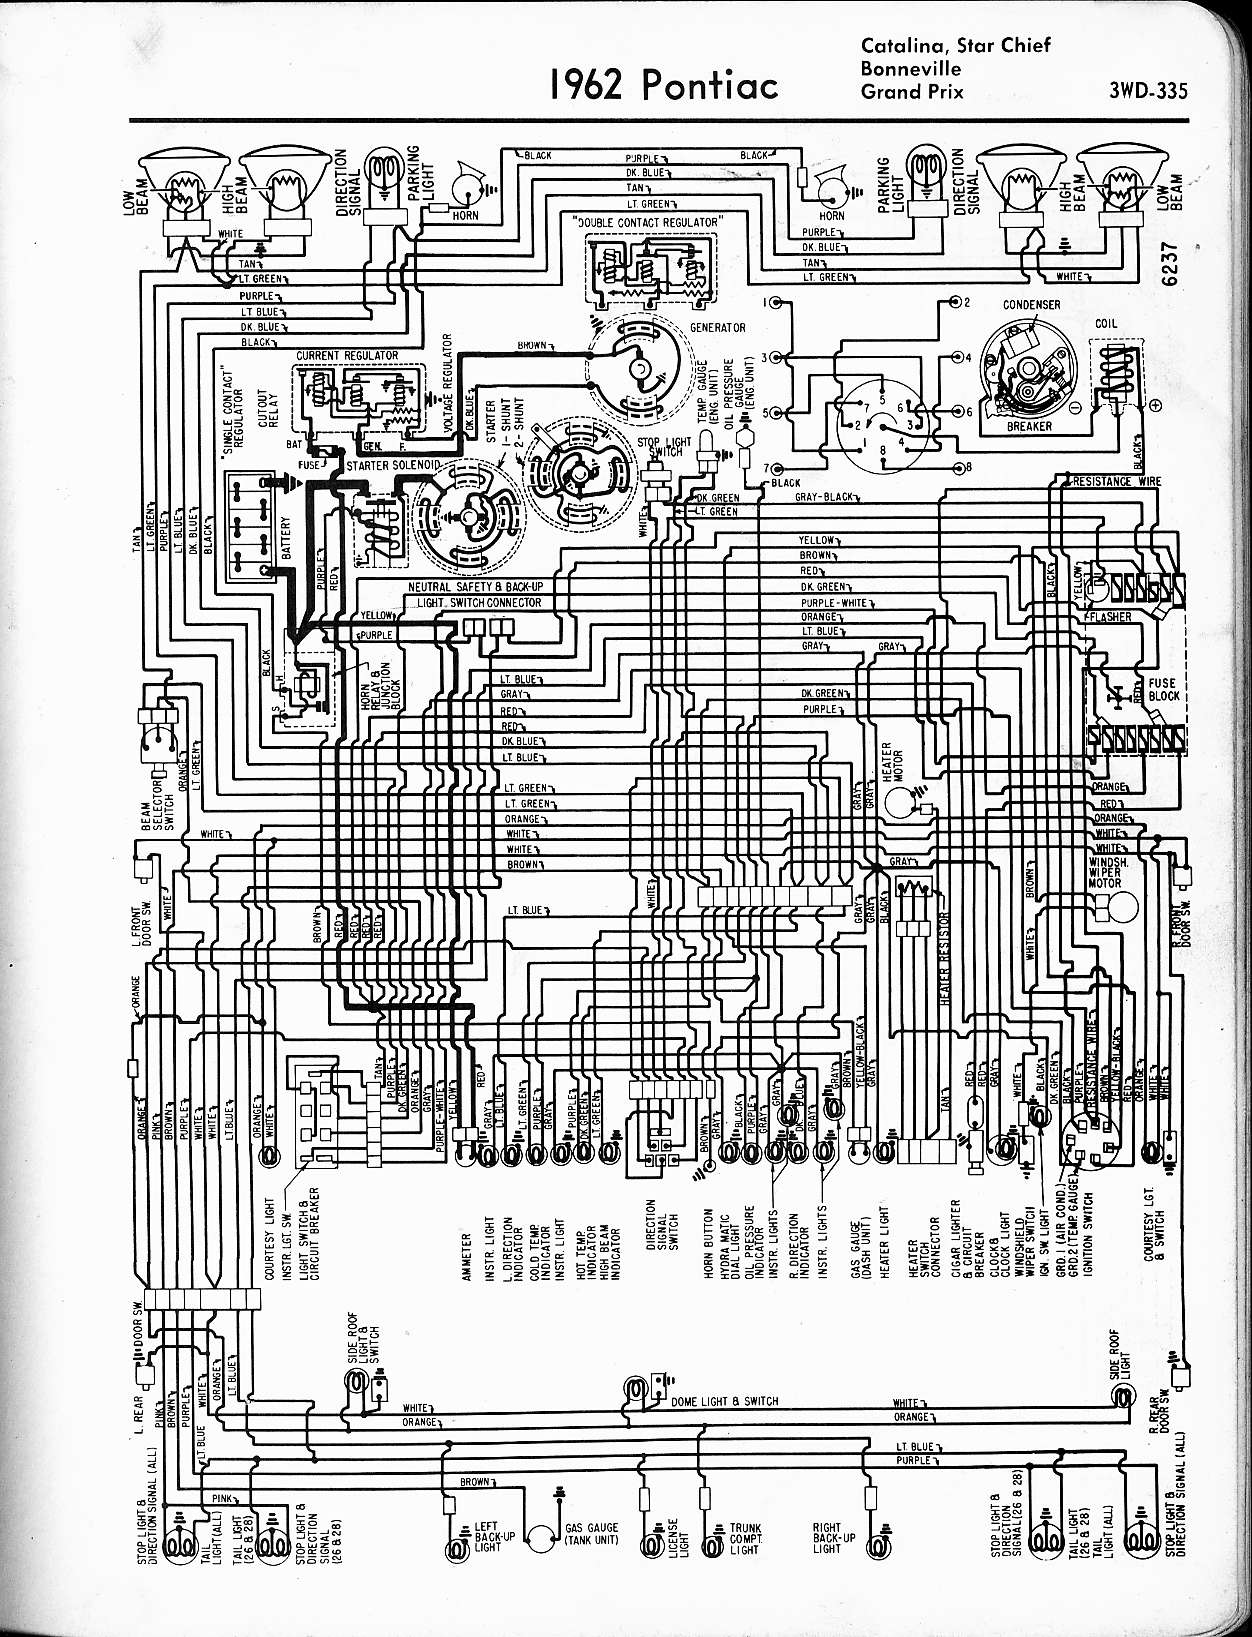 MWire5765 335 wallace racing wiring diagrams 2002 pontiac grand prix wiring diagram at soozxer.org